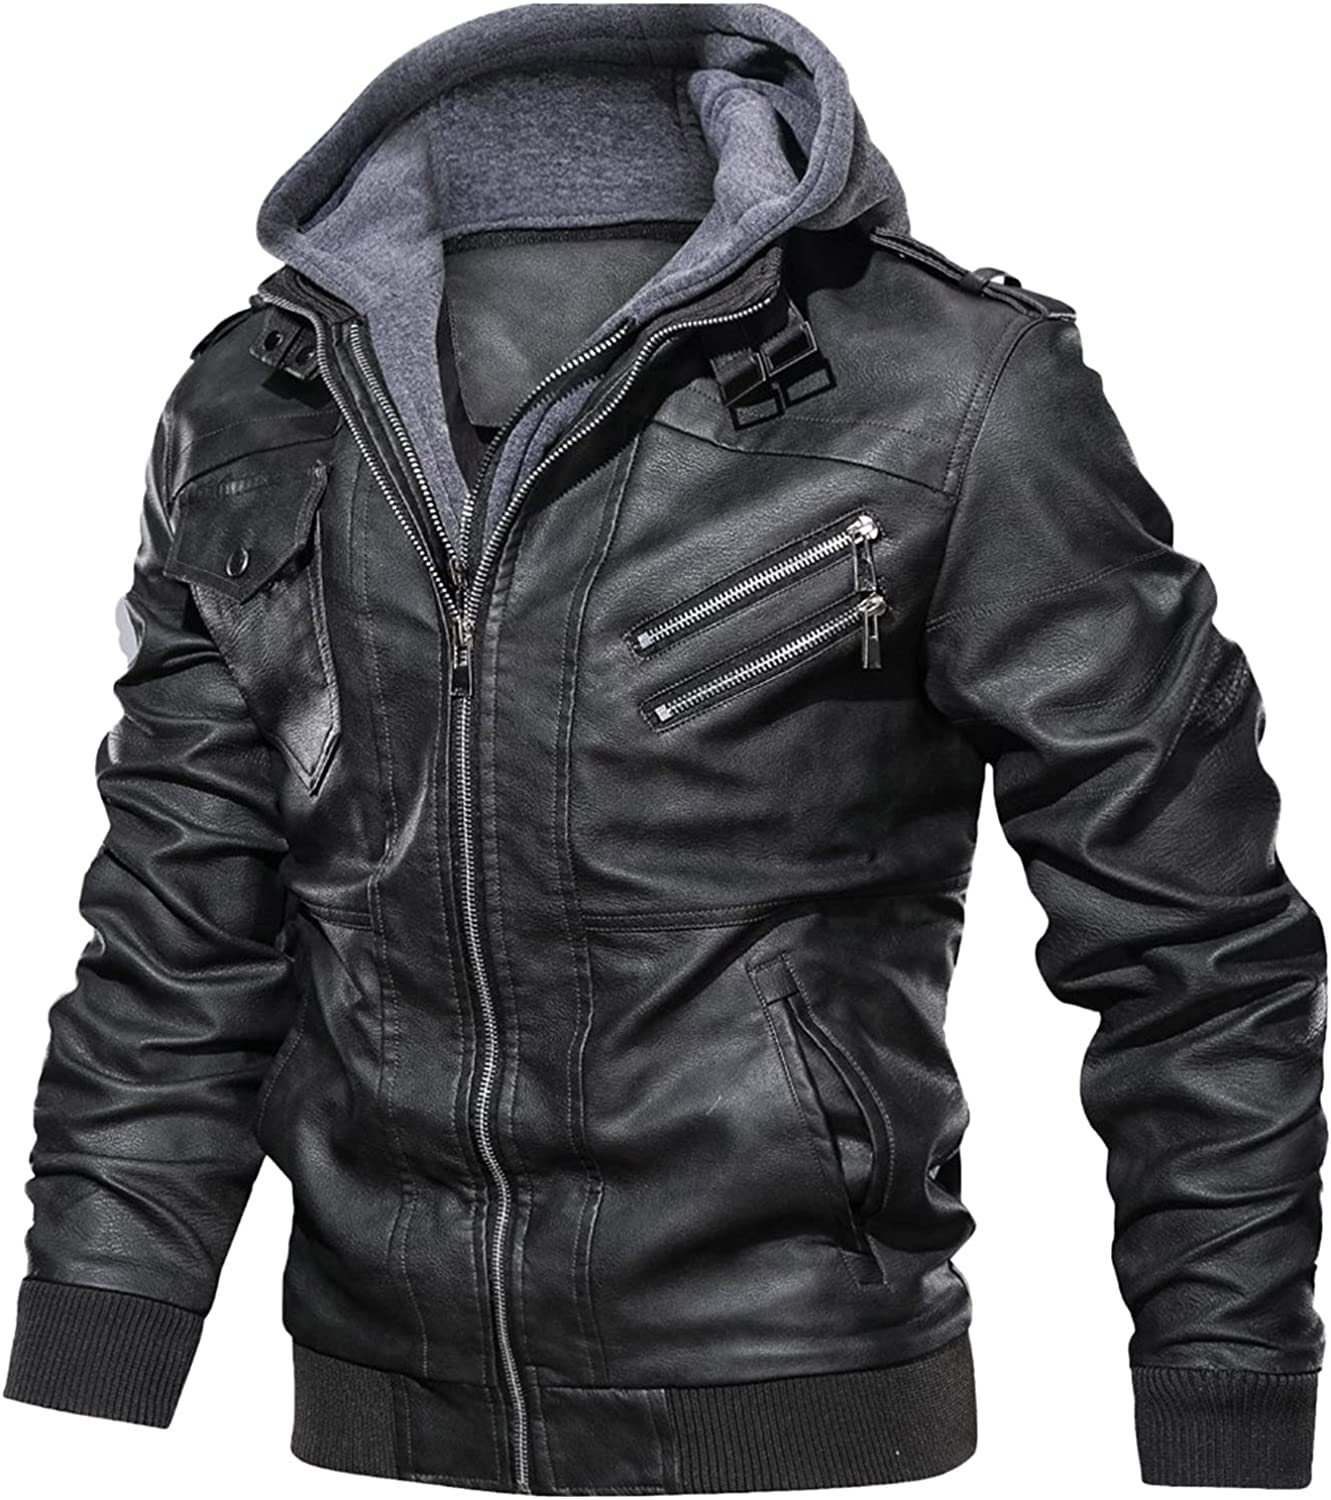 OutTop Men's Faux Leather Jacket Motorcycle Coats Windproof Moto Outerwear Vintage Bomber Hoodie with Removable Hood